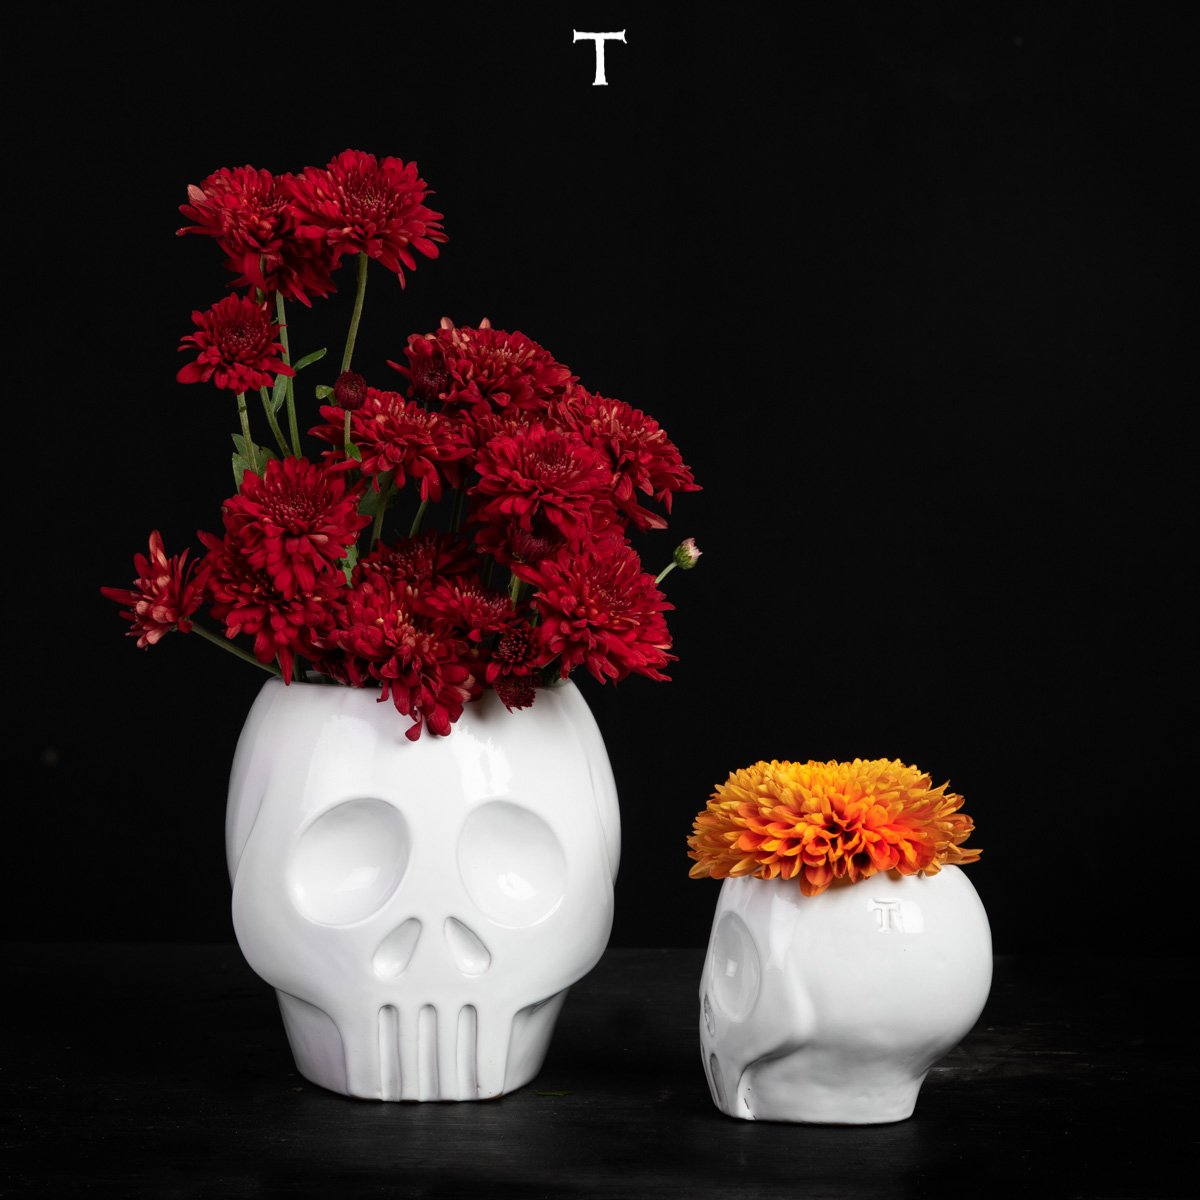 SET OF 2 SKULL FLOWER BASES; Crystal White